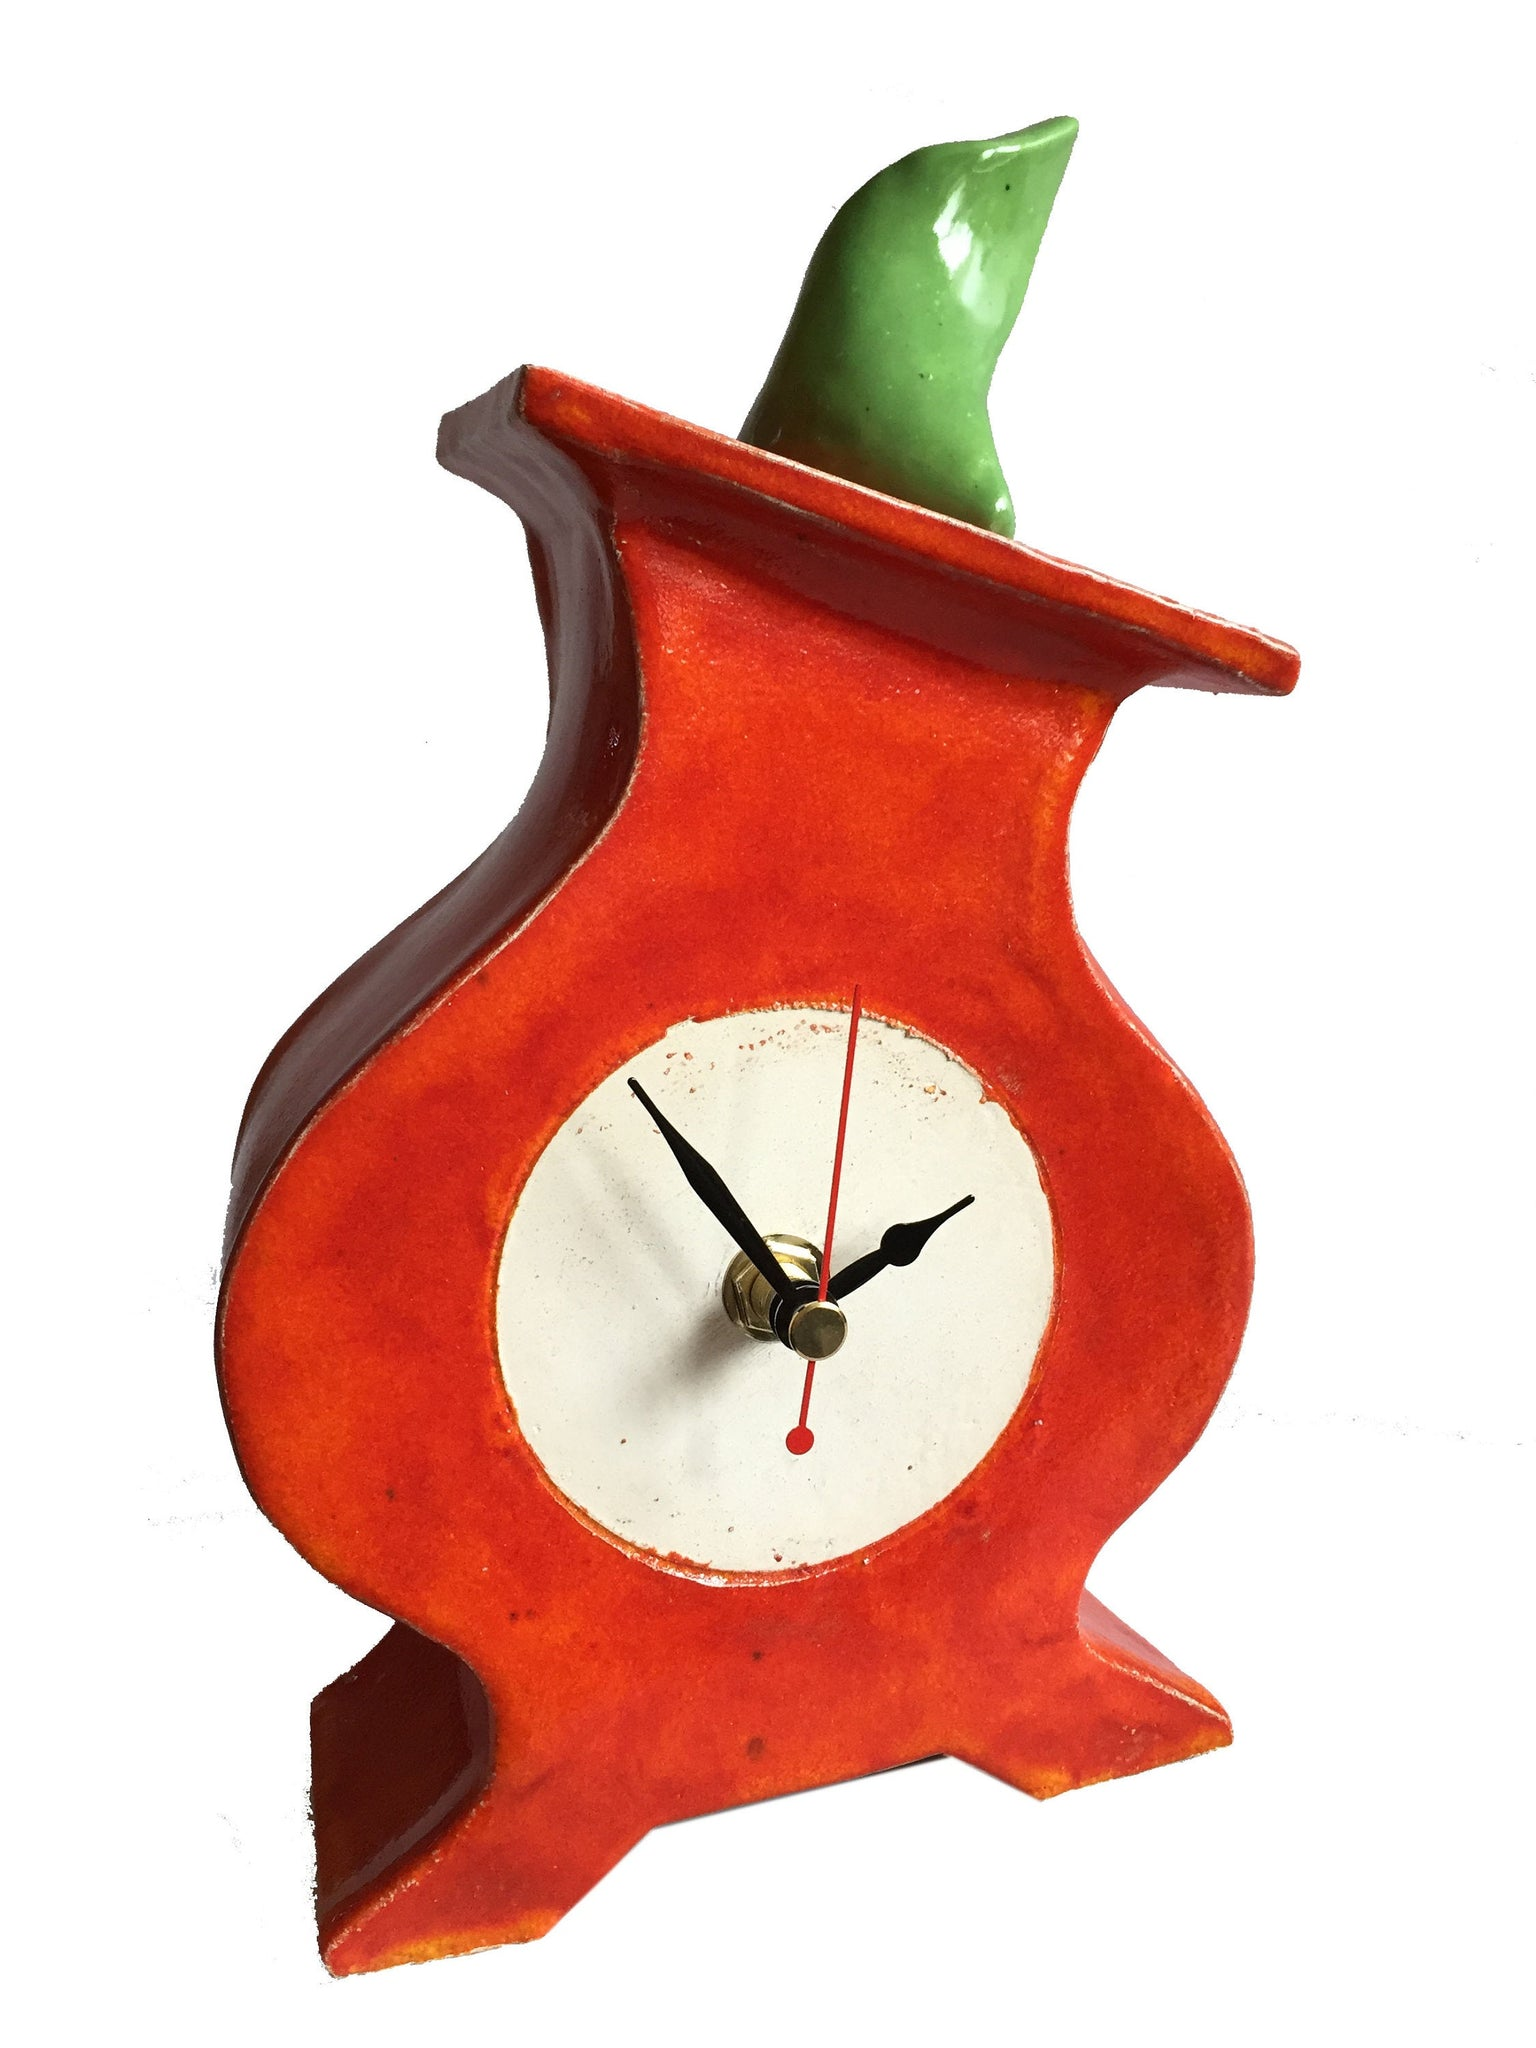 Shelf Clock, Quirky Round Clock for Mantel, Handmade Clock for Desk, Tabletop Clock, Bedside Table Clock - PeterBowenArt